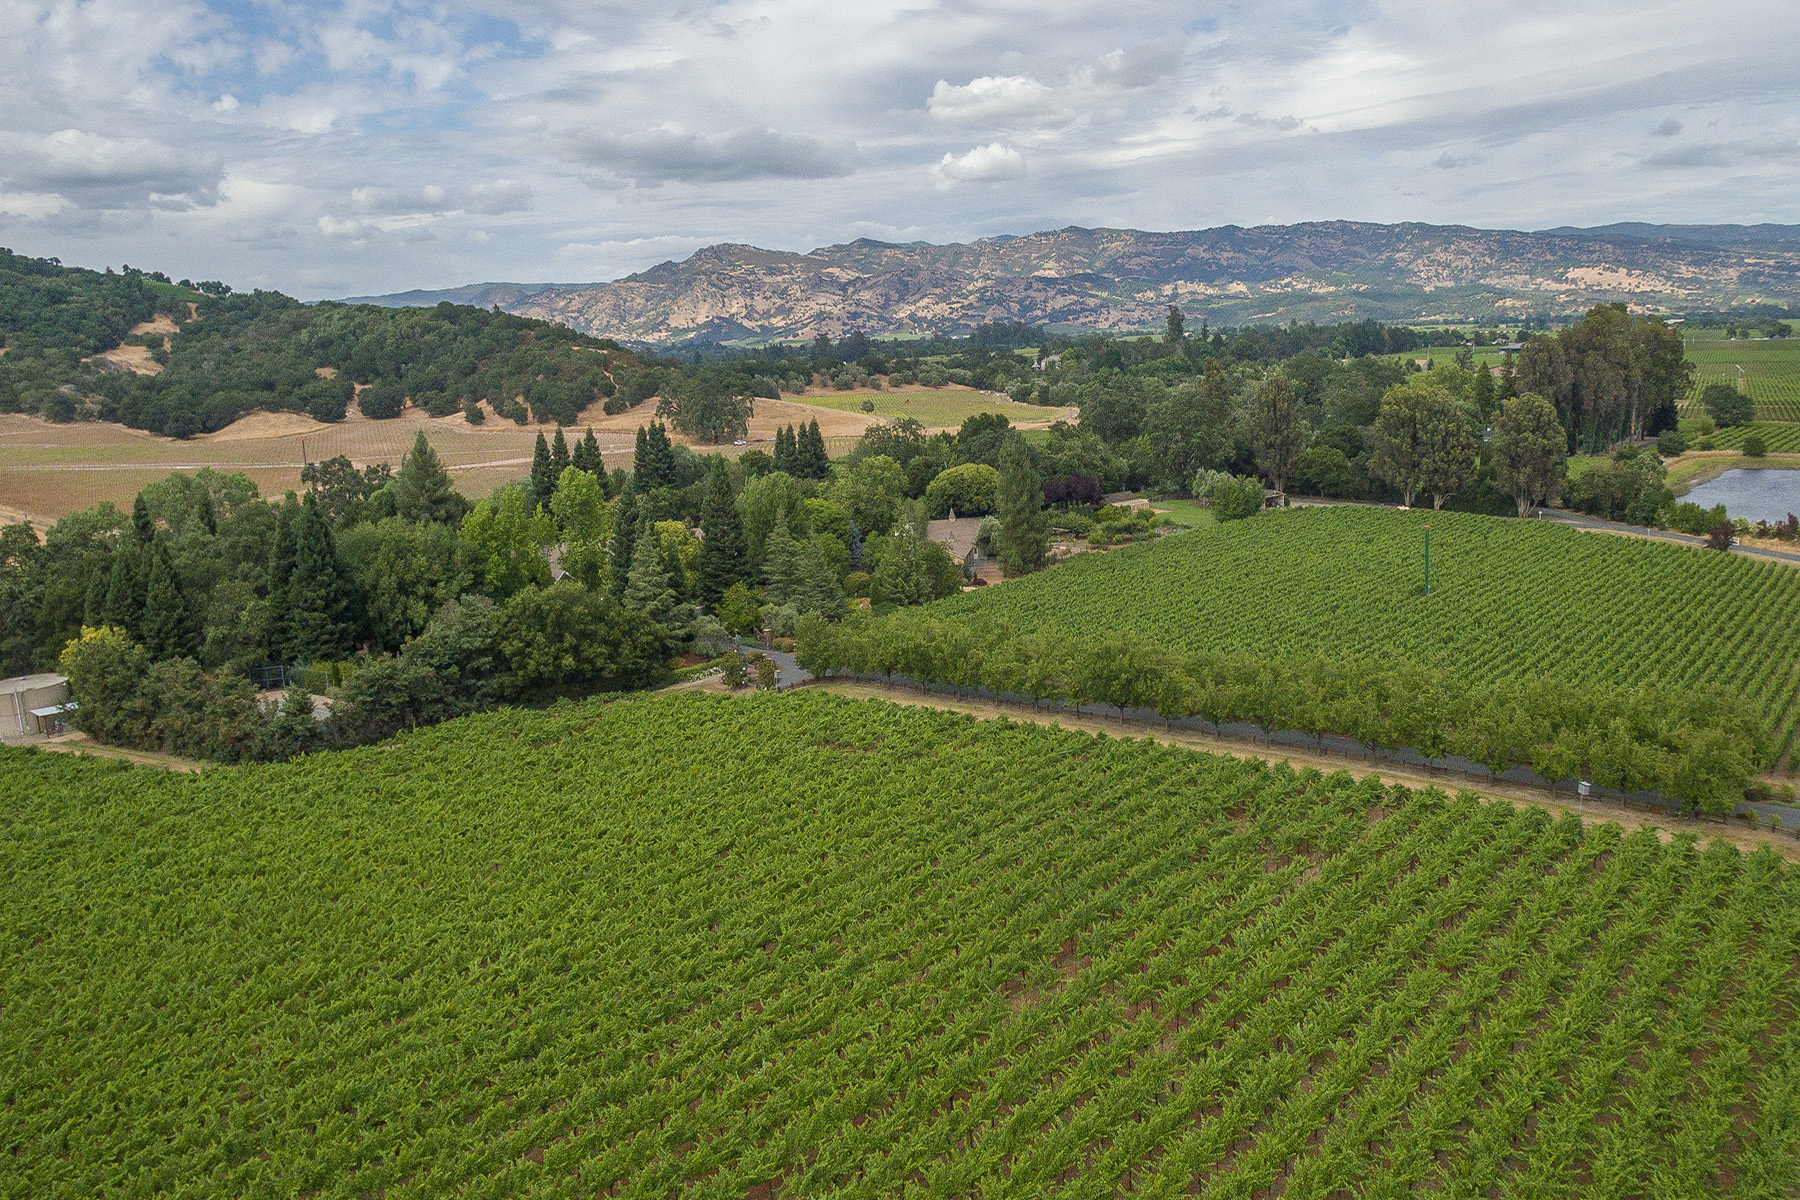 Farm / Ranch / Plantation for Sale at 4120 Dry Creek Rd, Napa, CA 94558 4120 Dry Creek Rd Napa, 94558 United States